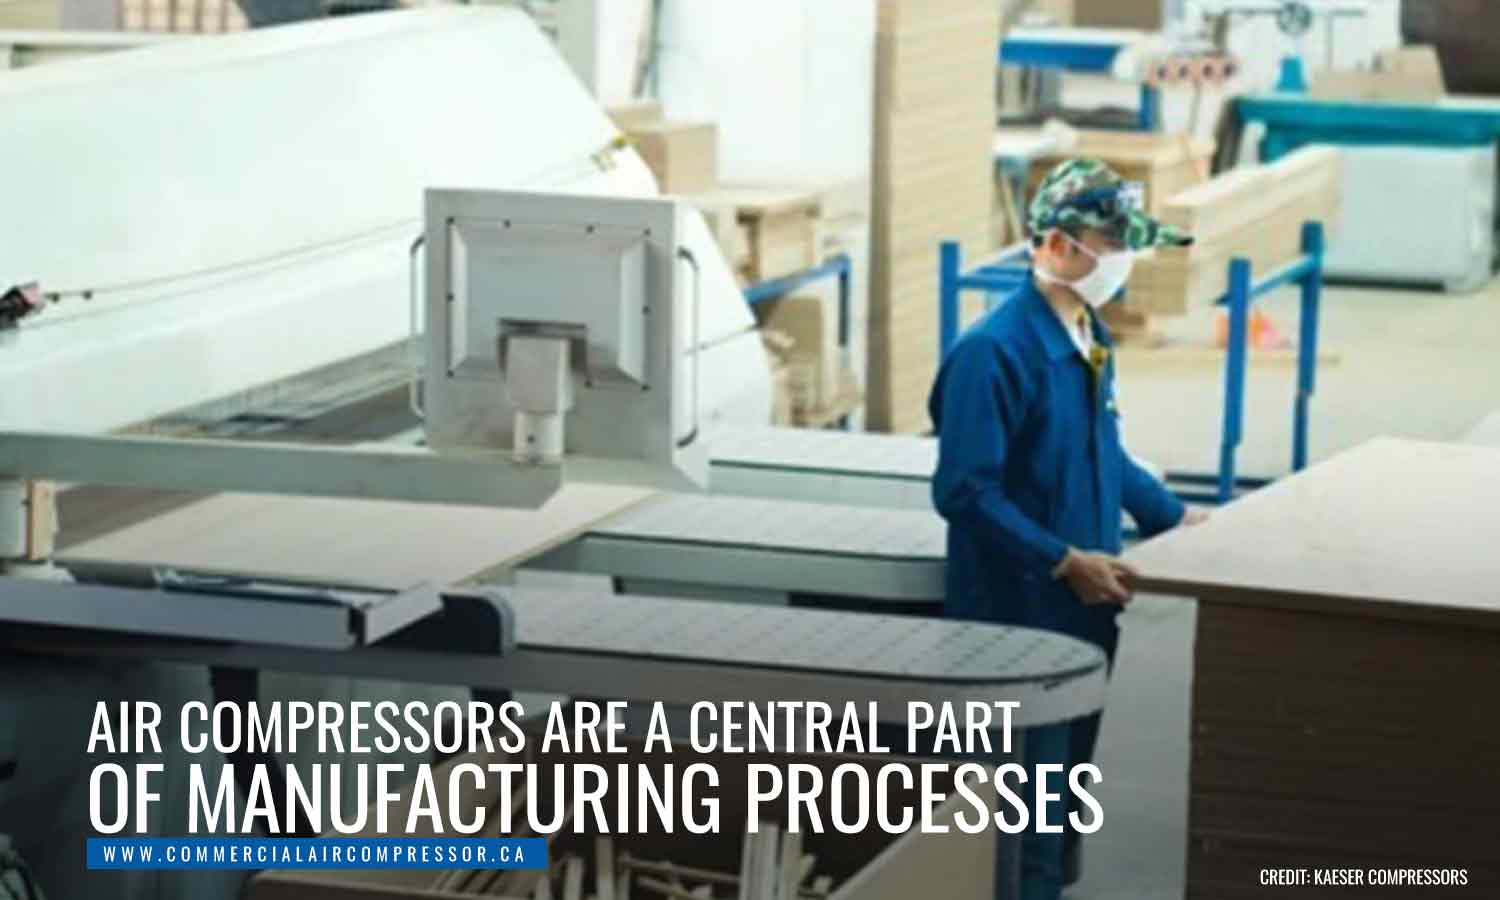 Air compressors are a central part of manufacturing processes